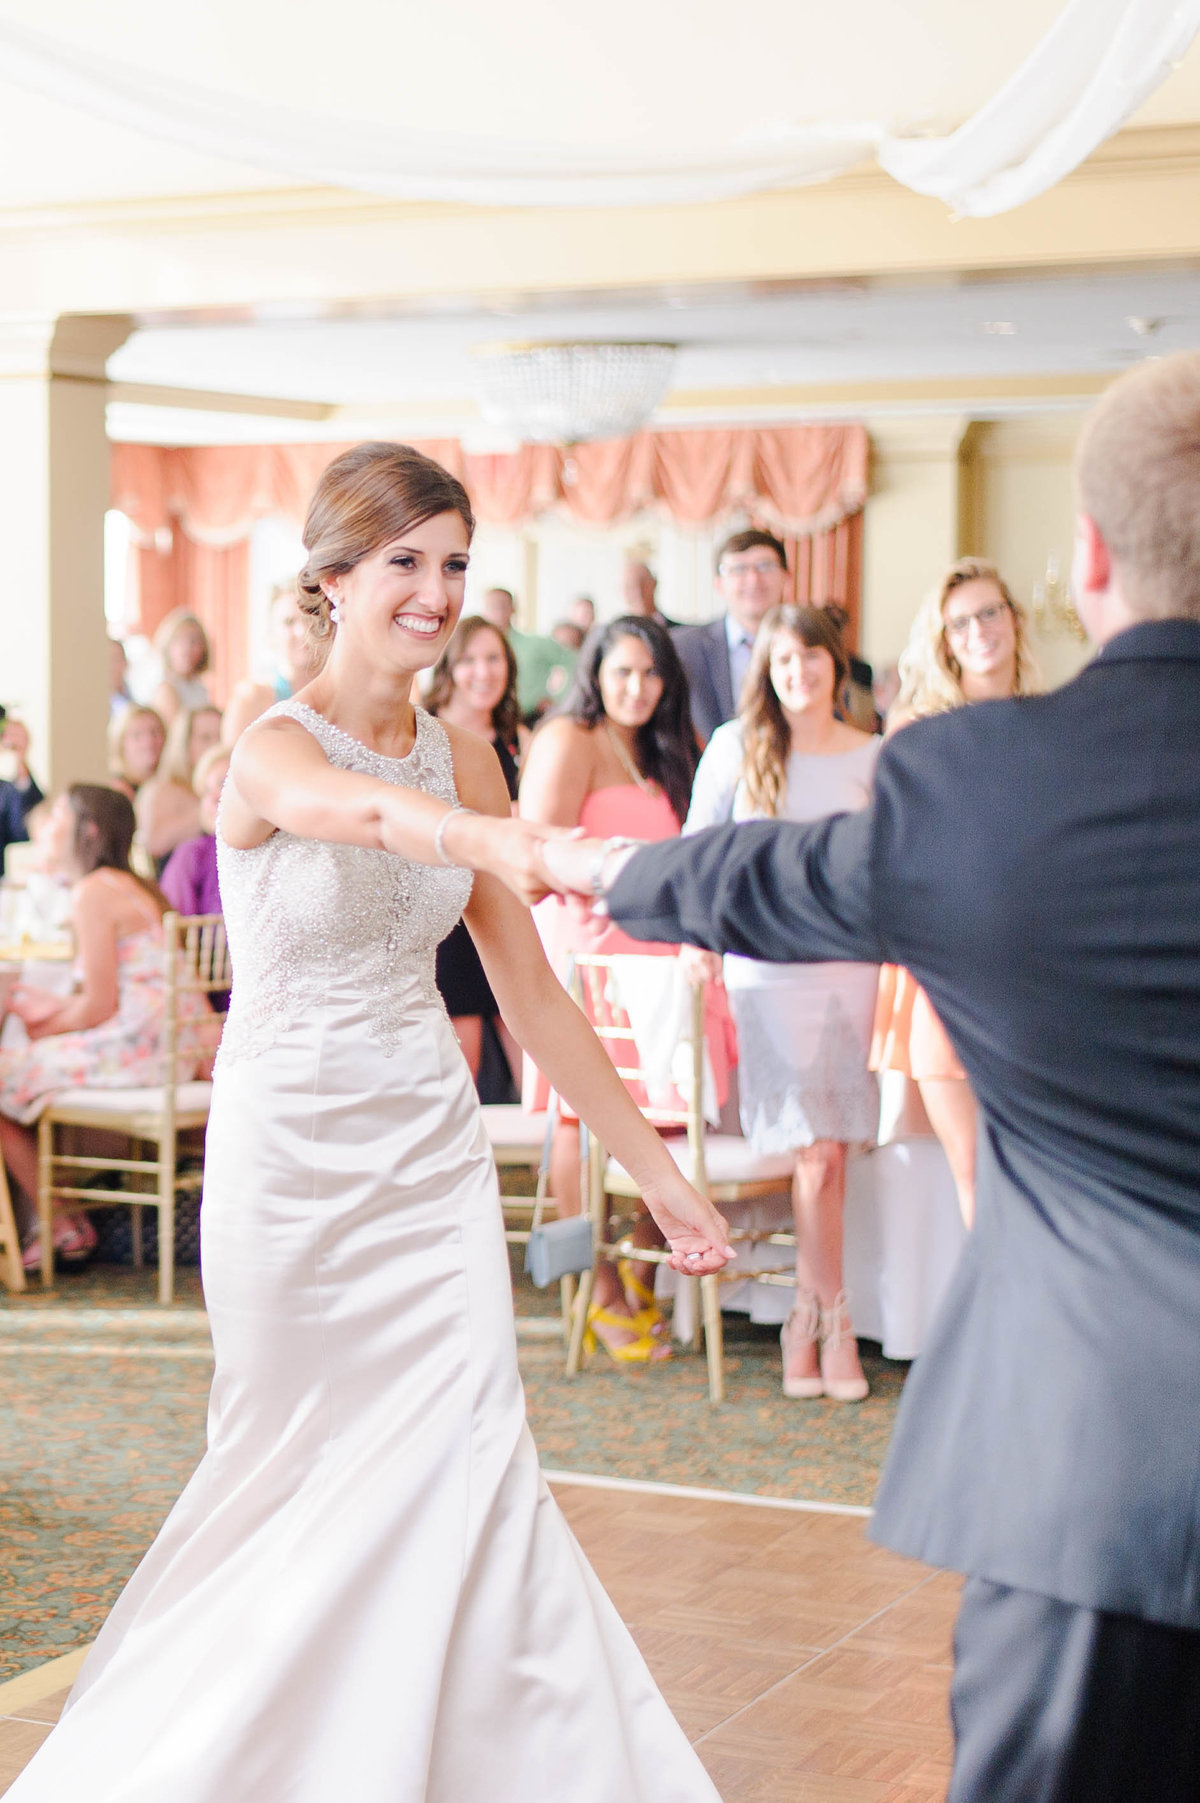 MB-valleybrooke-country-club-wedding-photos-135